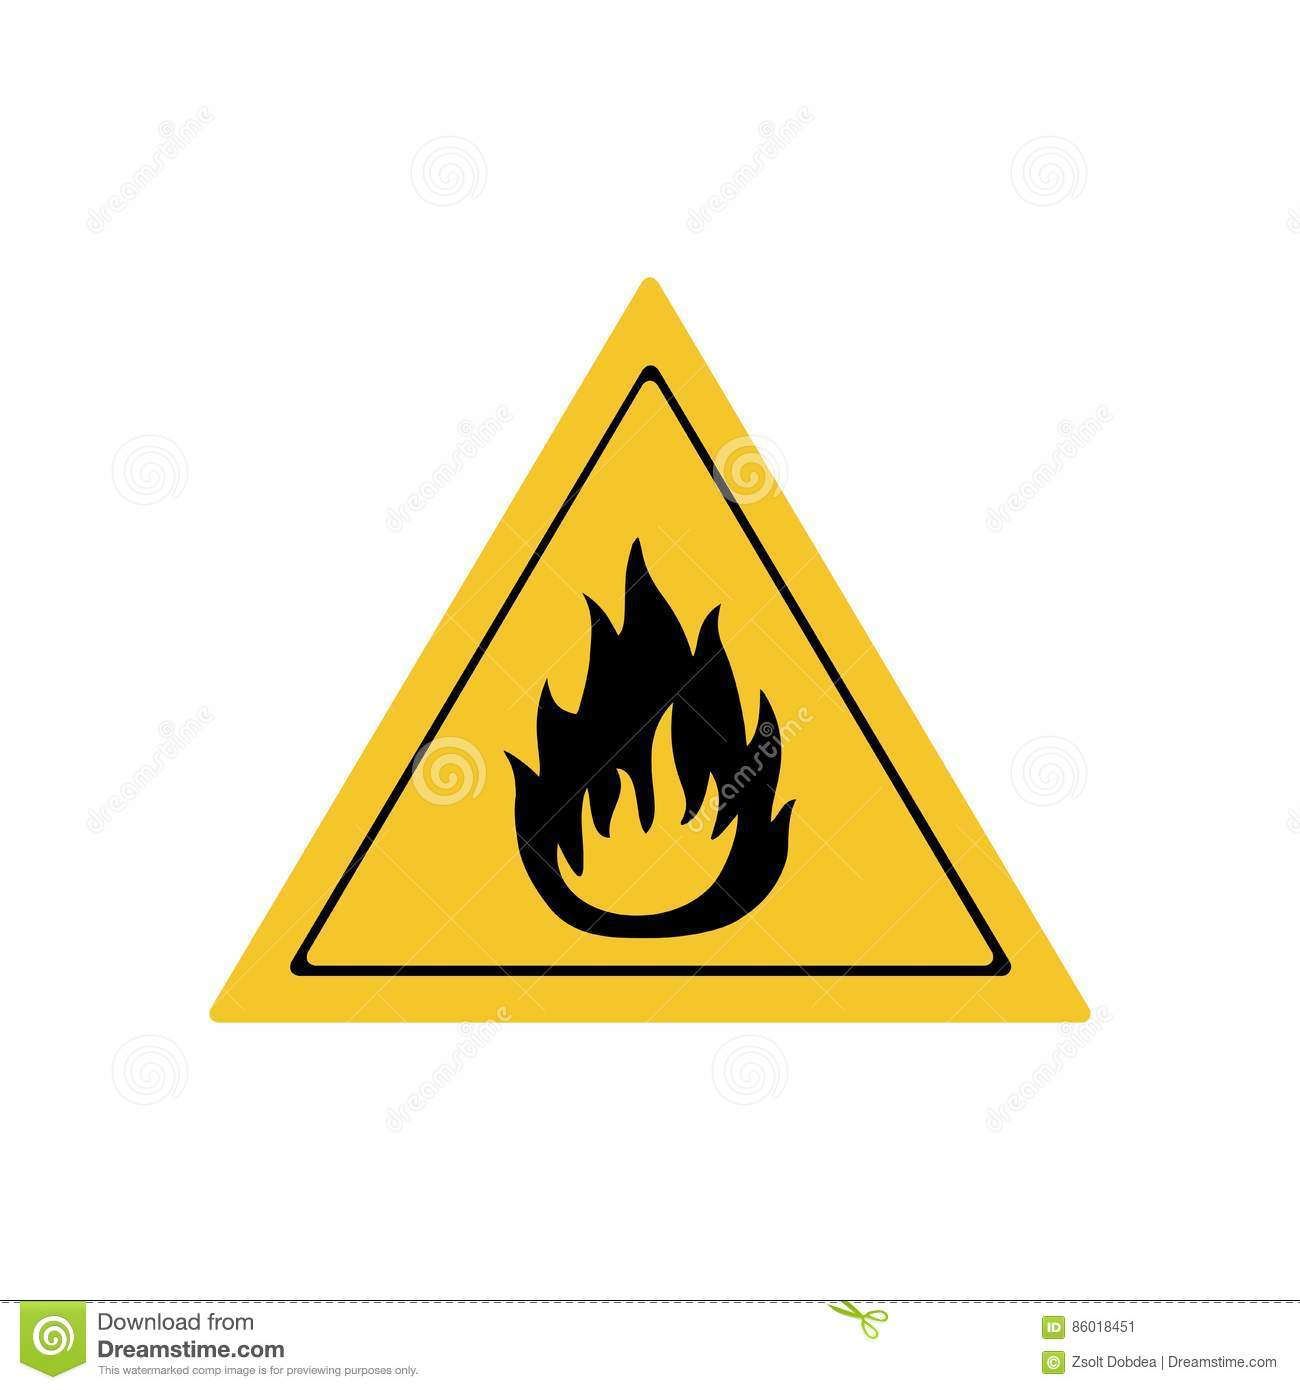 Flammable material sign vector design stock vector image 86018451 flammable material sign vector design buycottarizona